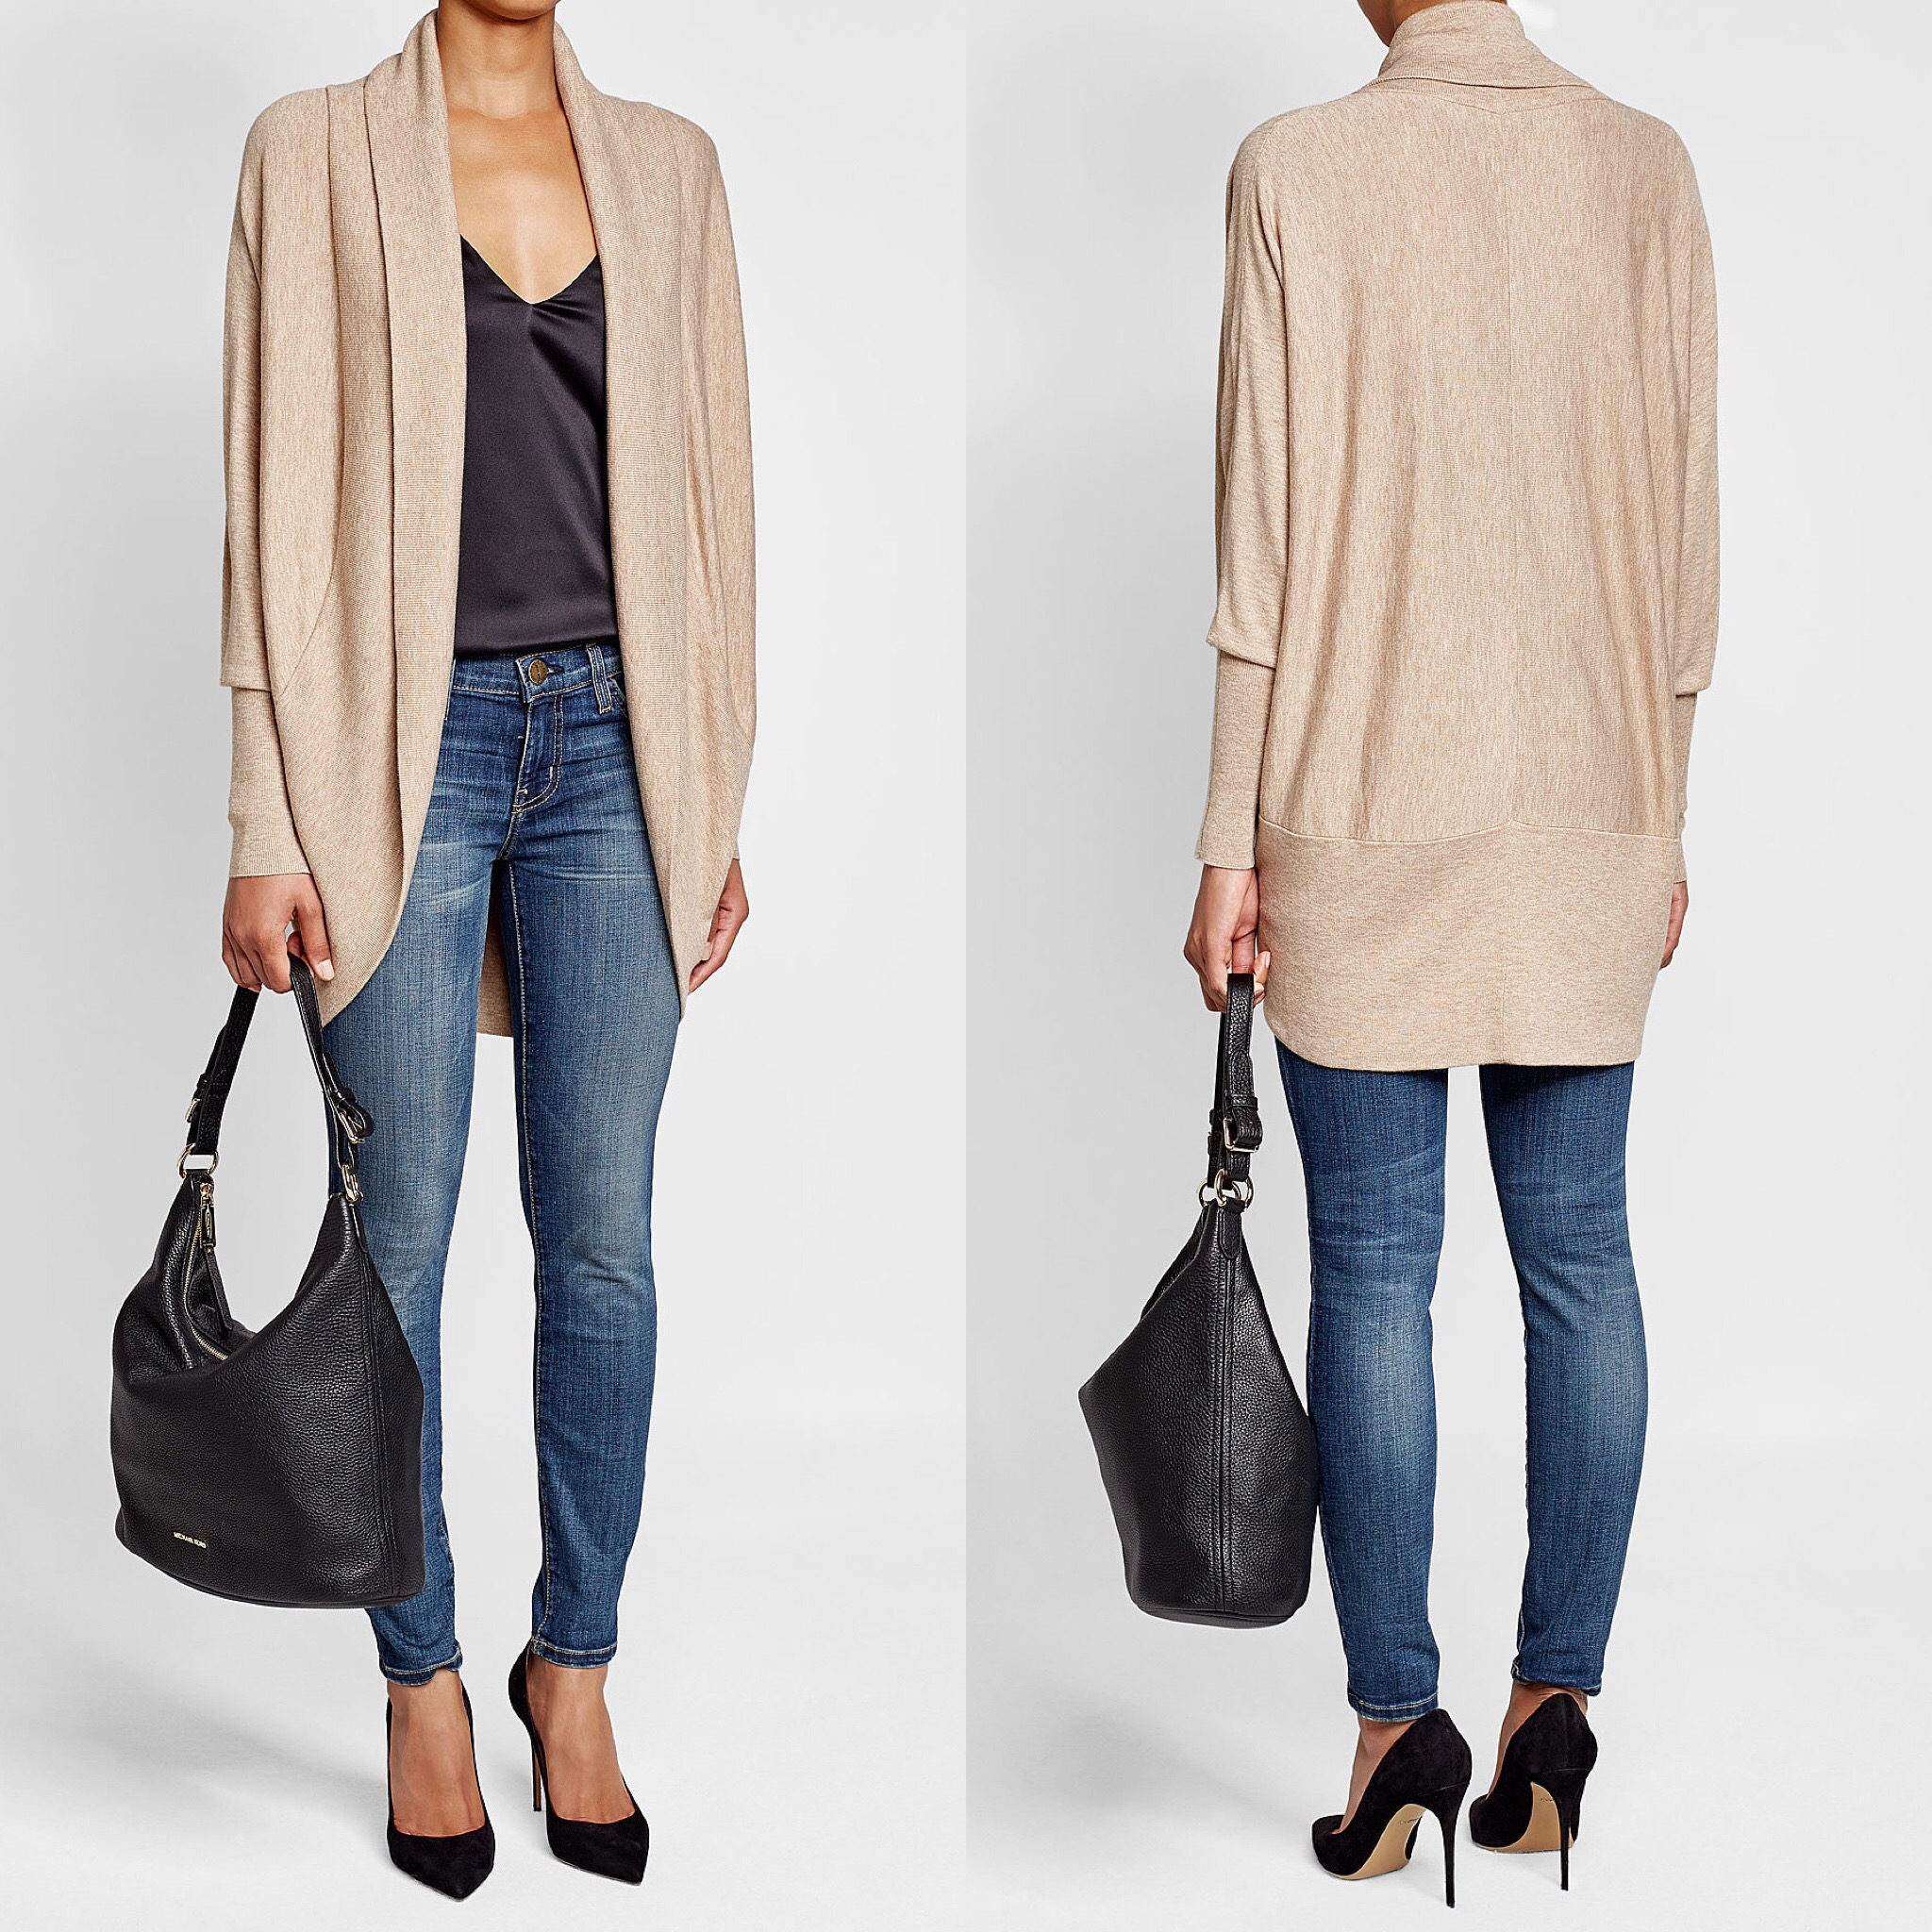 cardigan work outfit